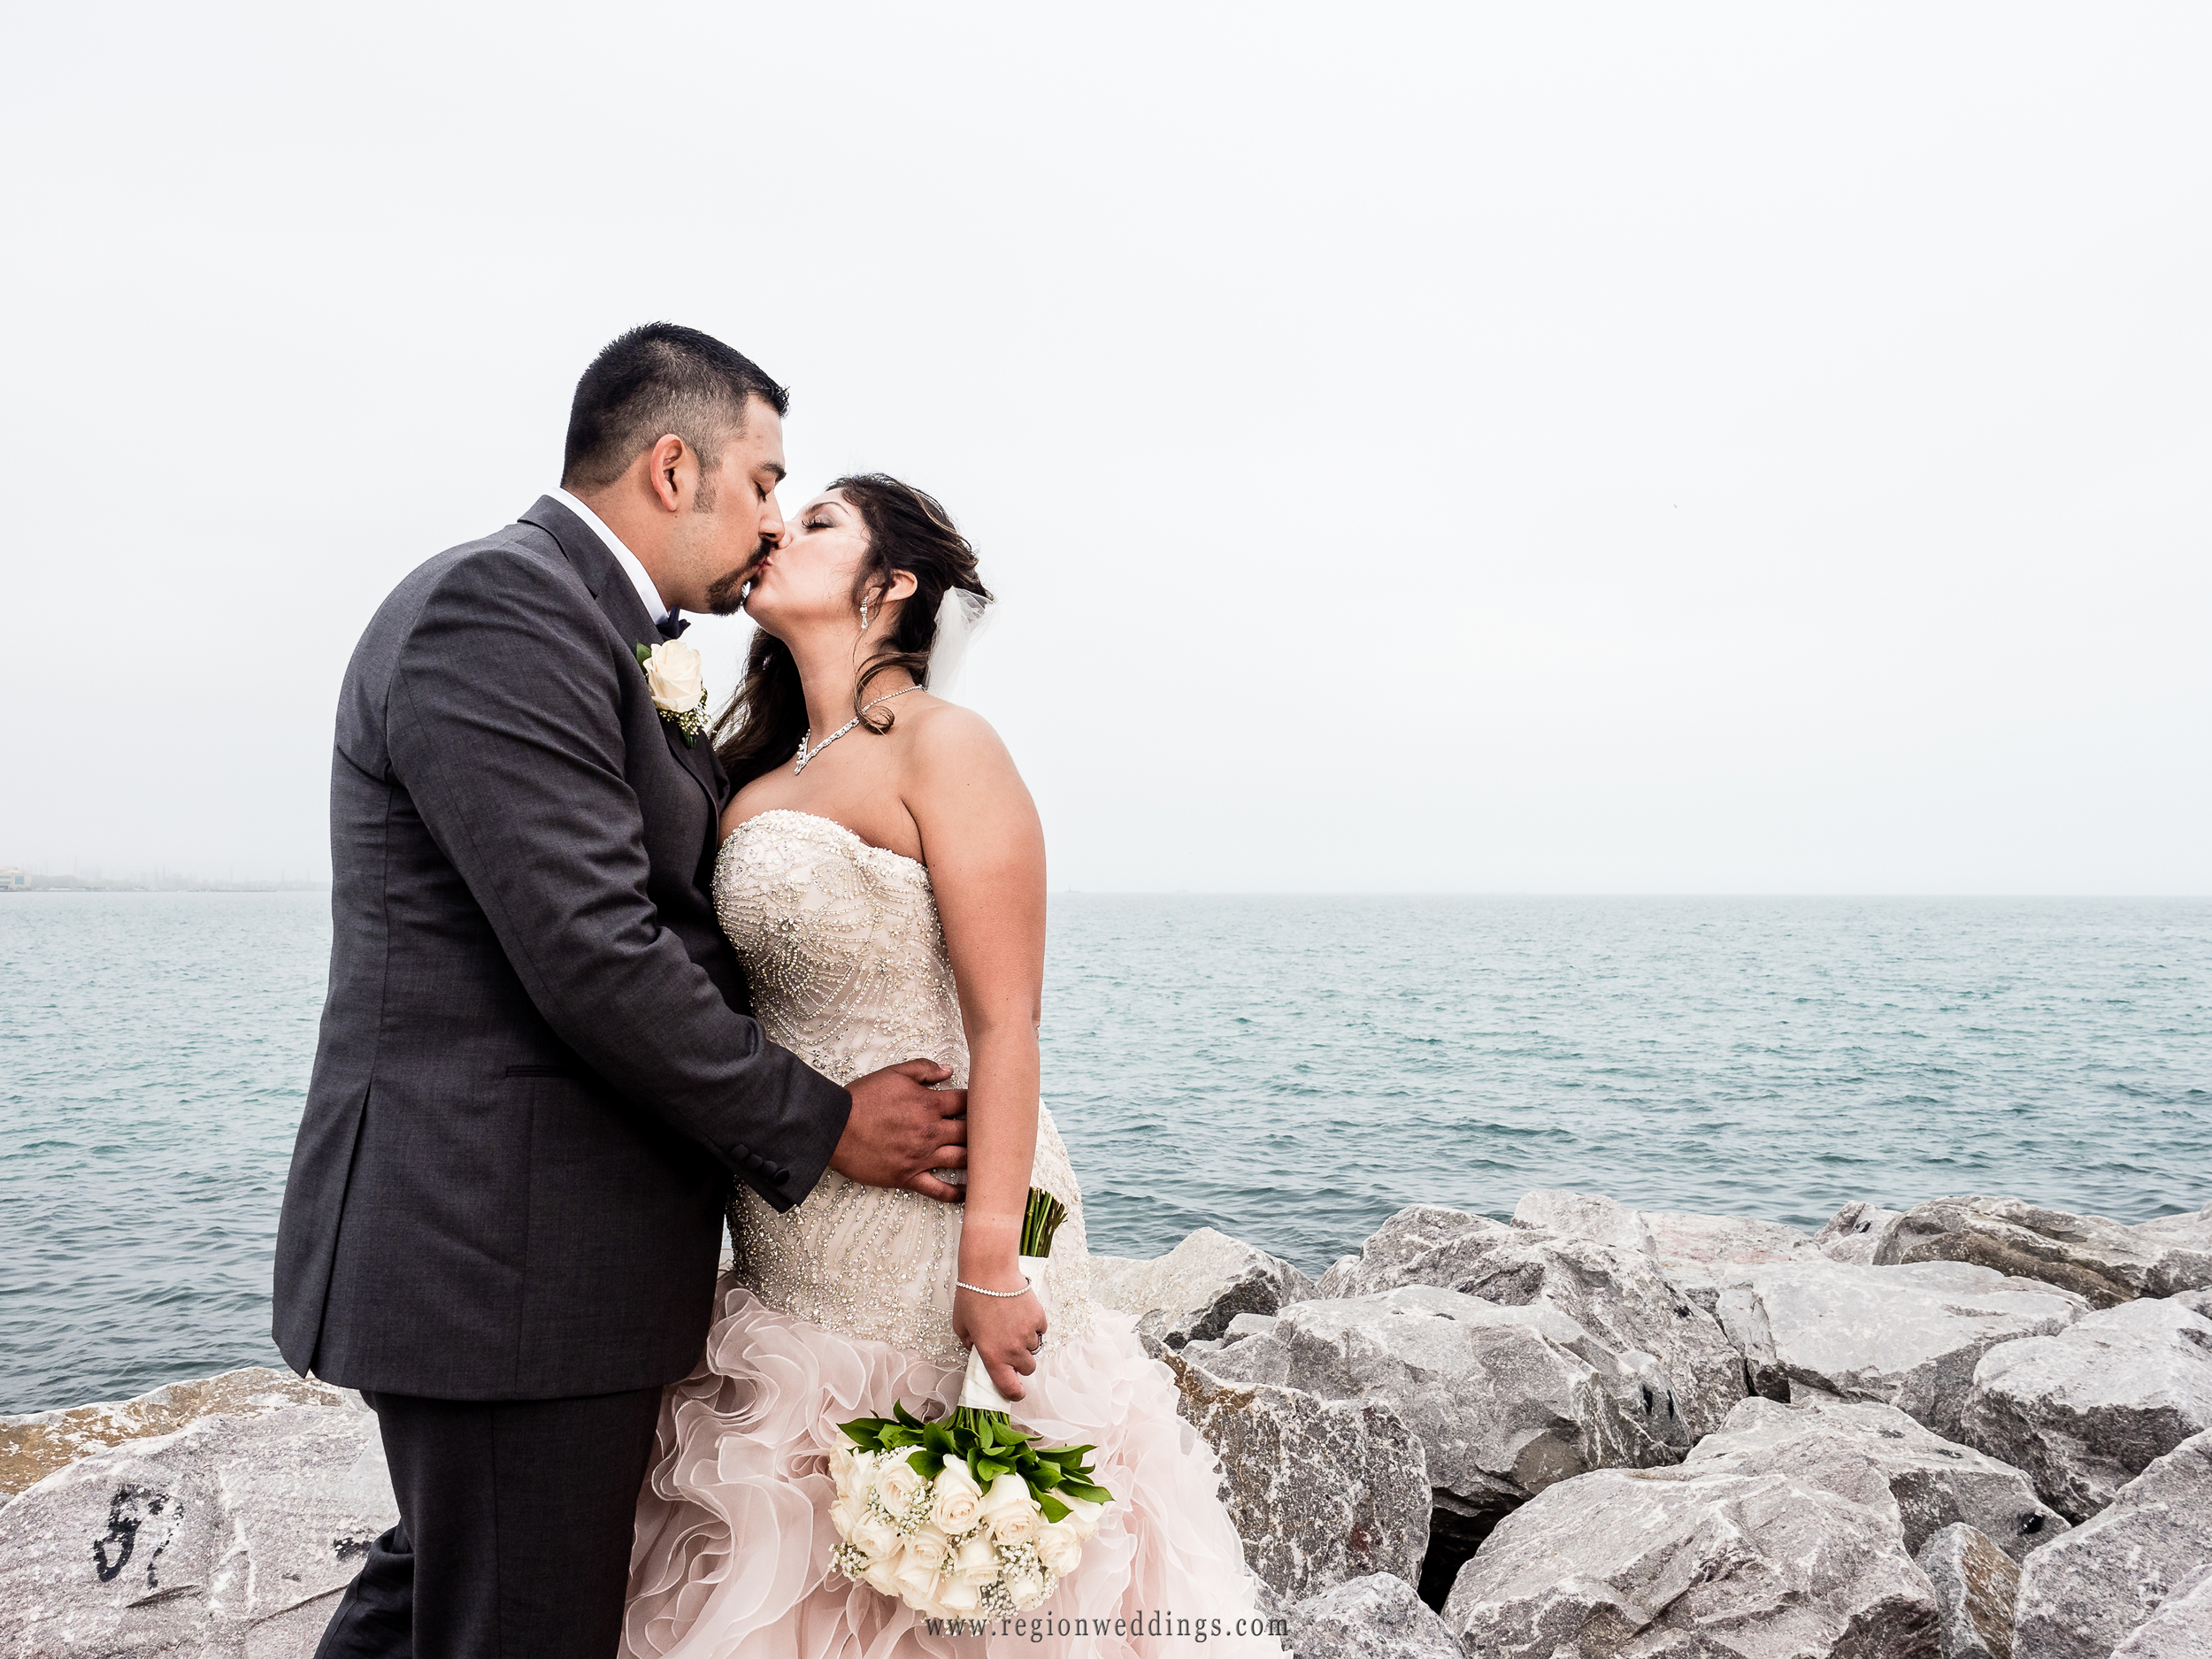 Bride and groom smooch atop the rocks at Whiting Lake Front Park shoreline.